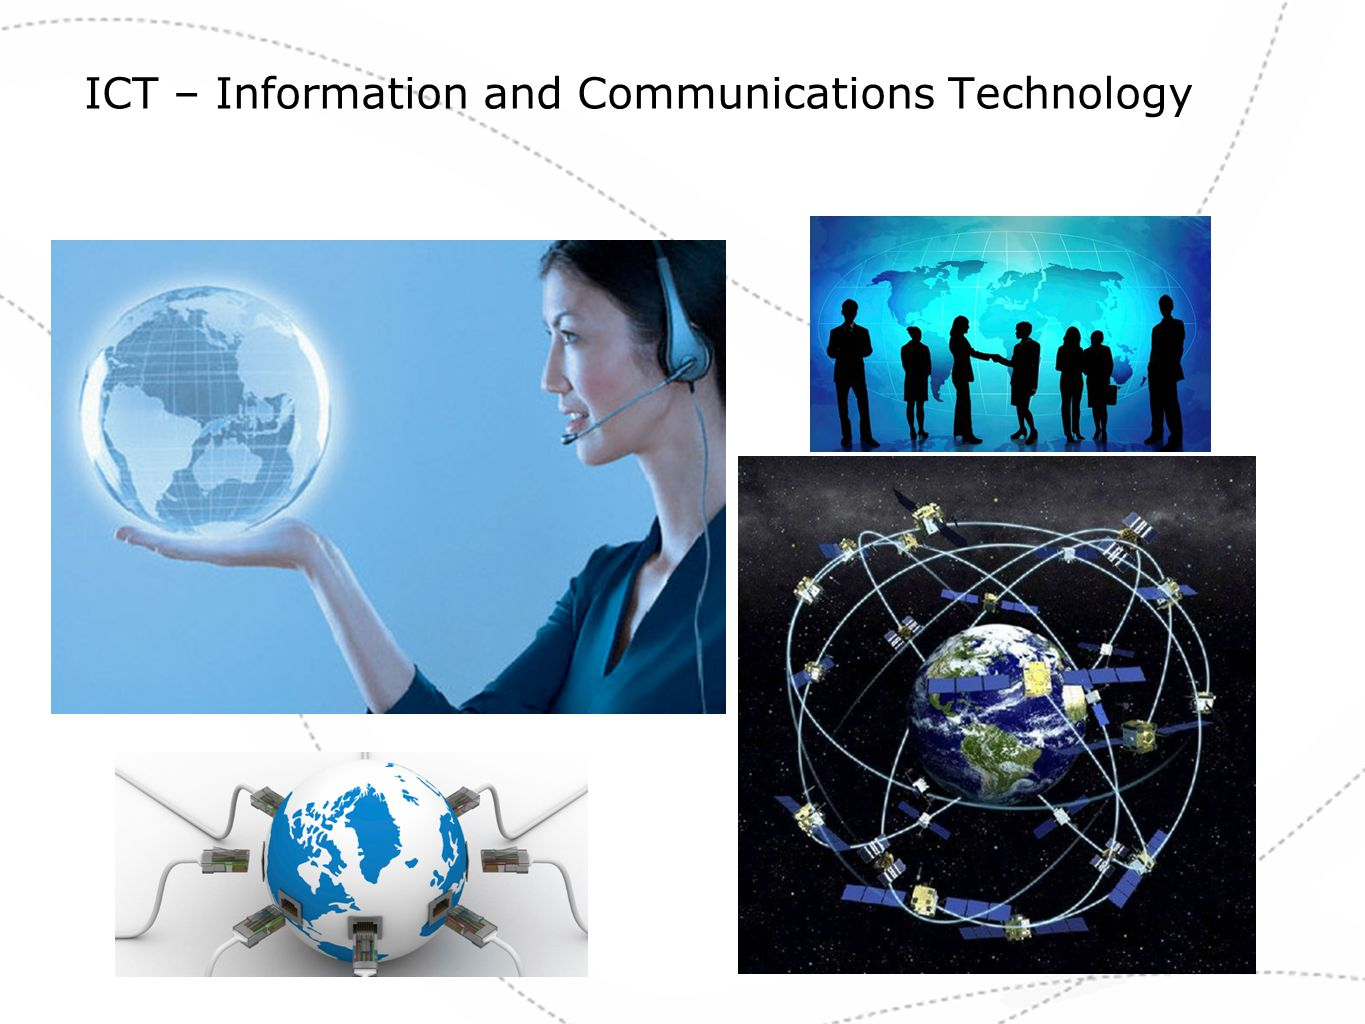 ICT – Information and Communications Technology